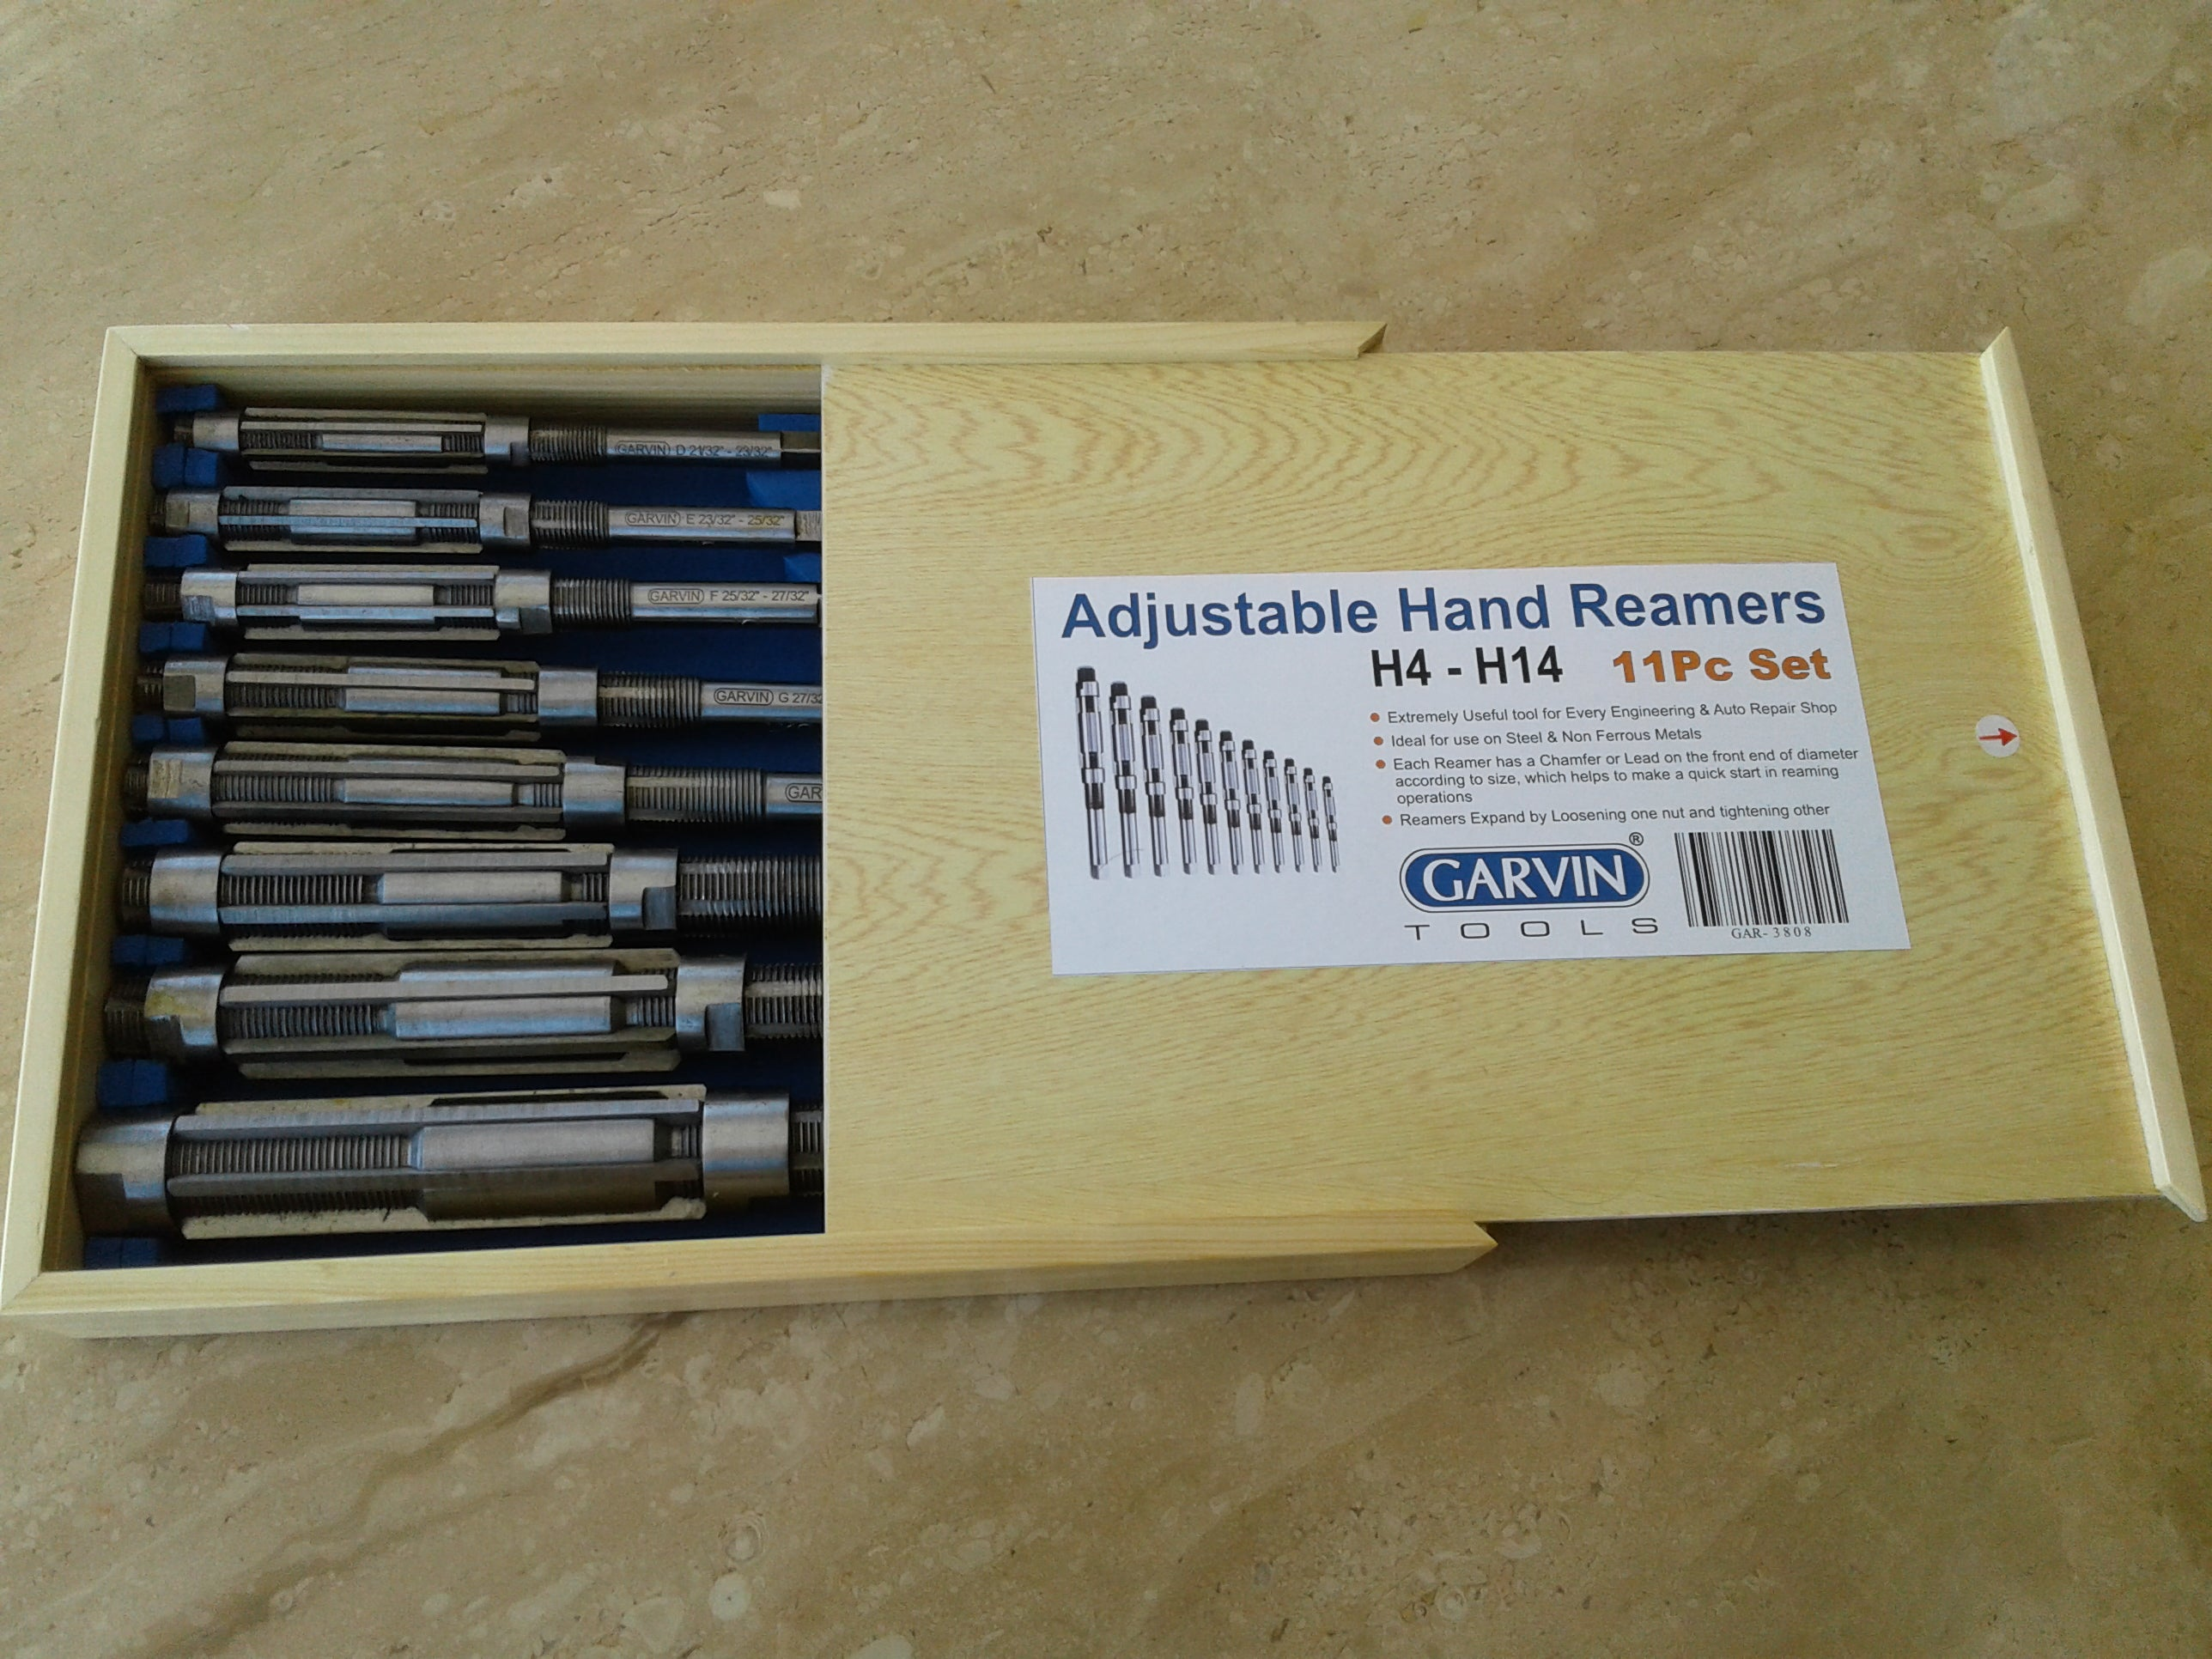 11 Pcs Set Adjustable Hand Reamer H4 to H14 New Expanding Reamer Set